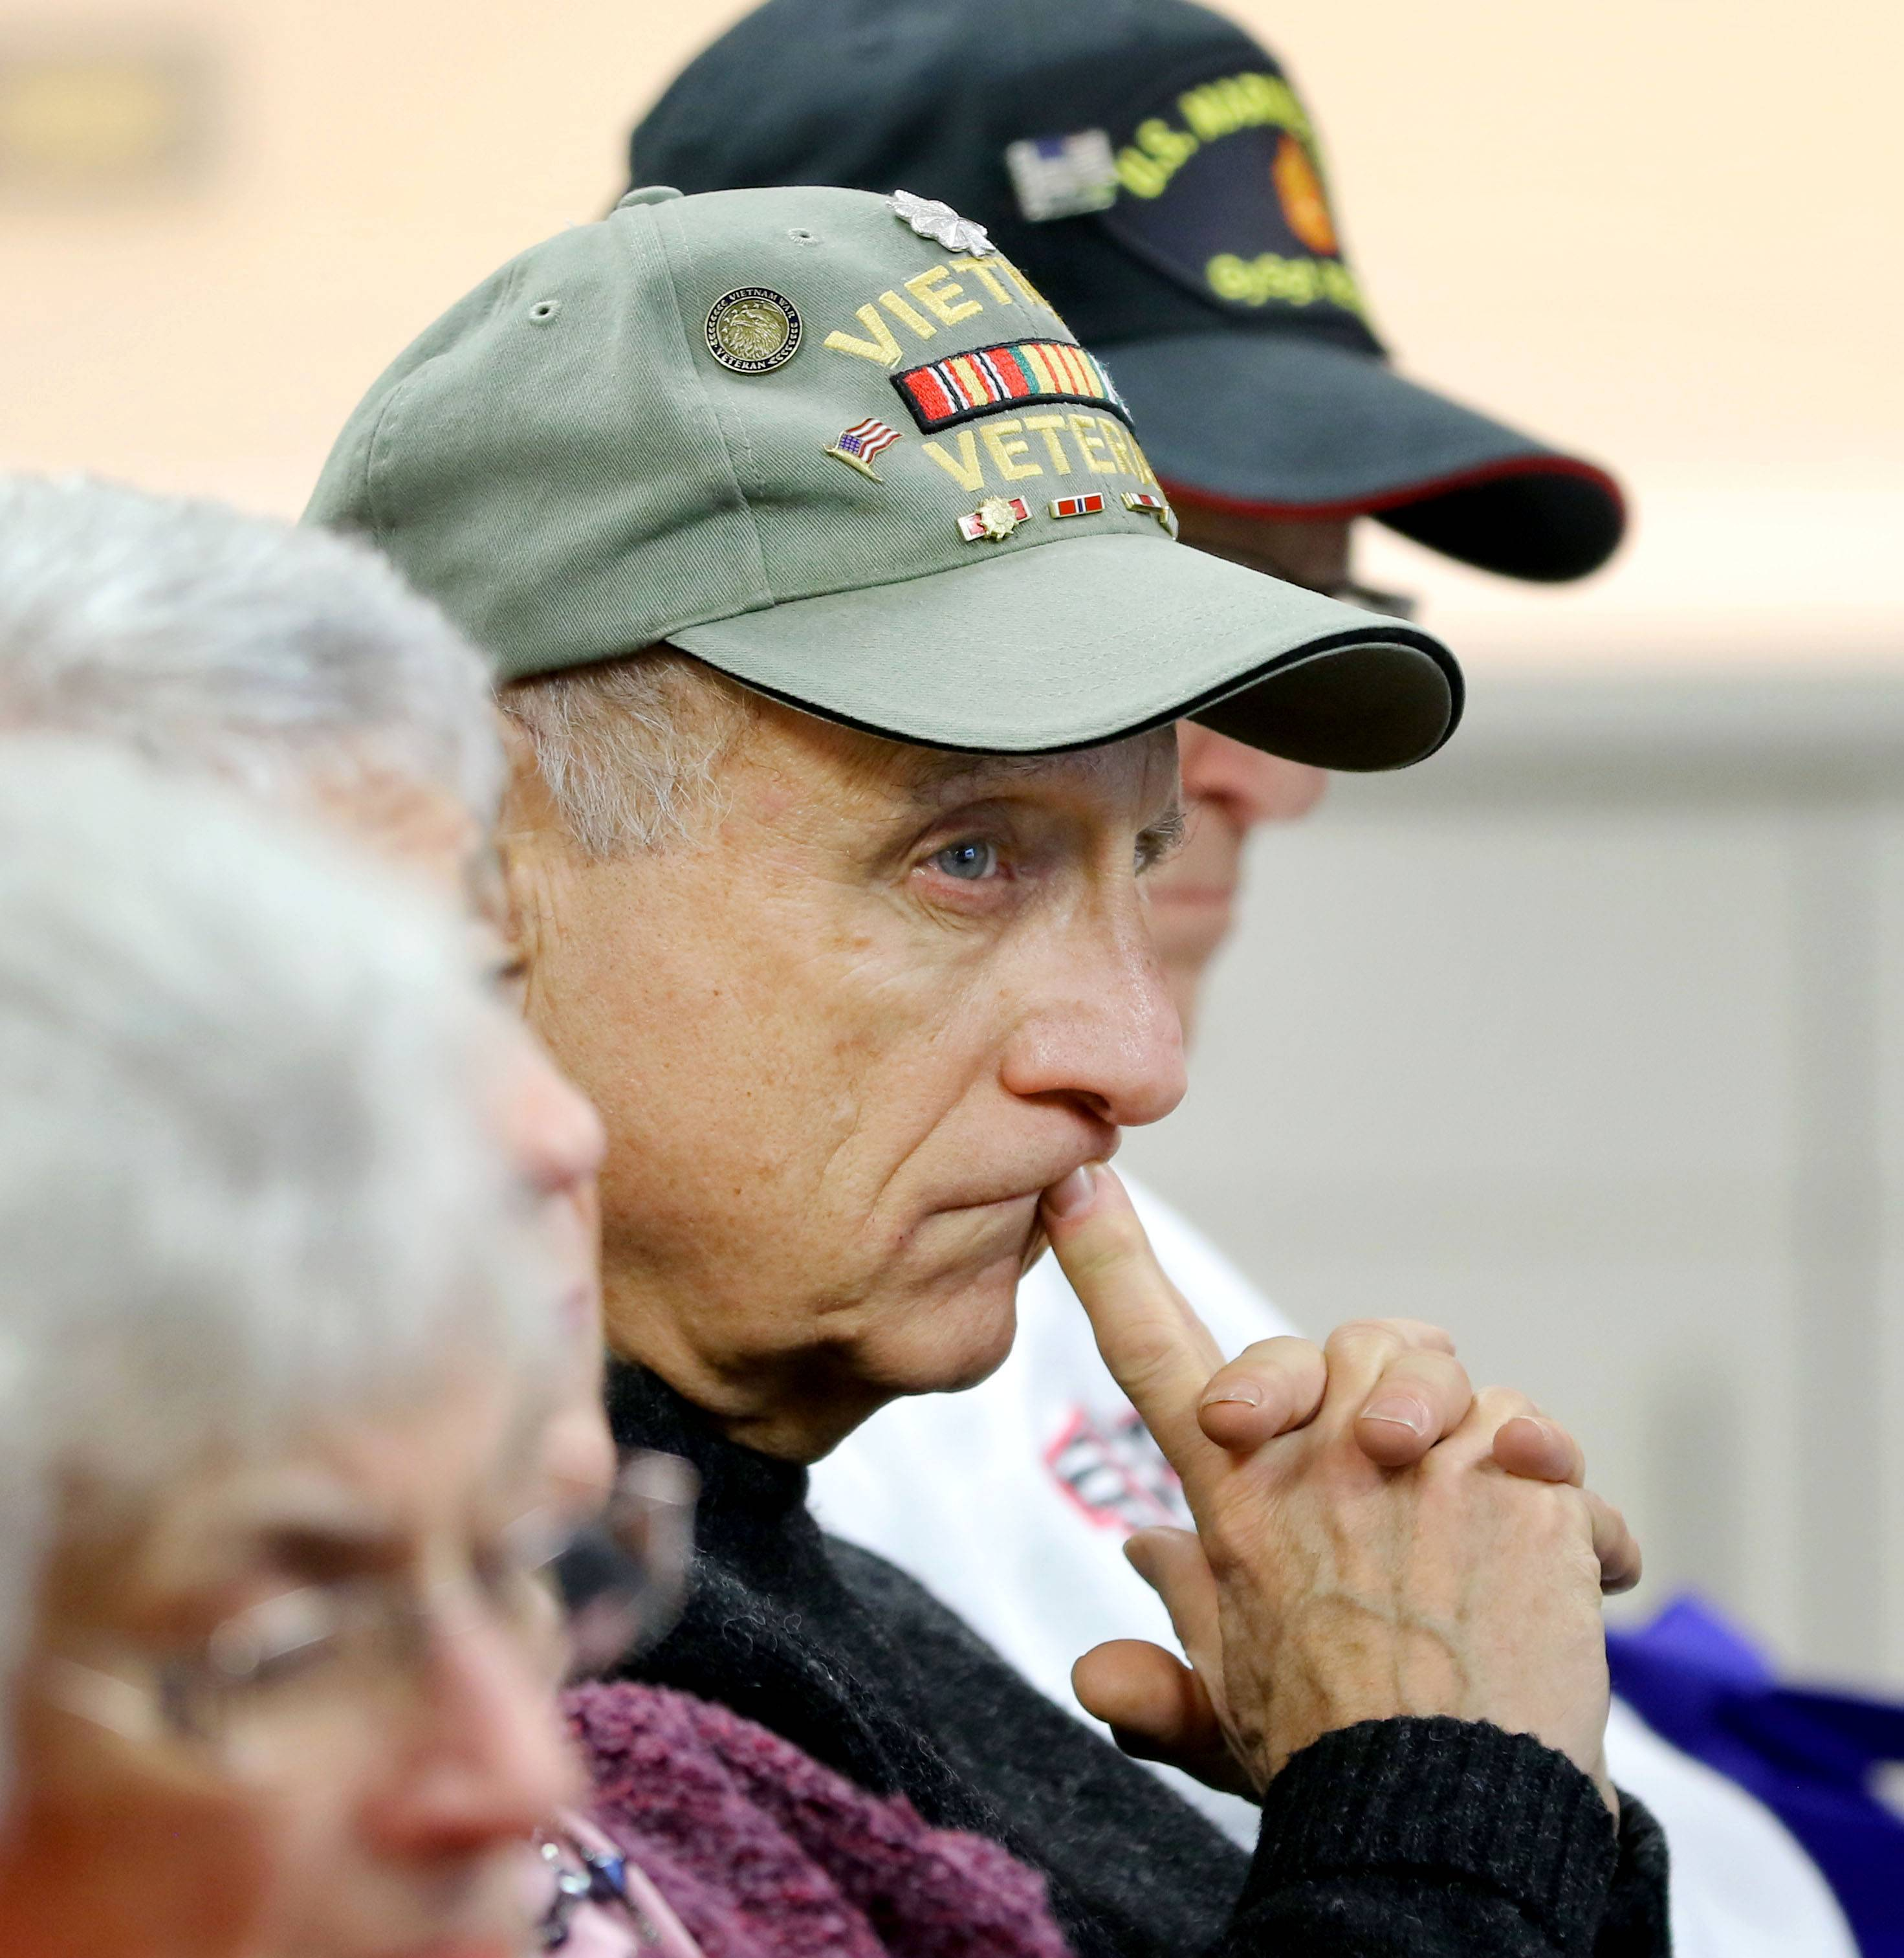 Army veteran George Duberstein of Haineville listens to the keynote address during a Veterans Day ceremony at the College of Lake County Friday in Grayslake. Duberstein served two tours of duty in Vietnam.